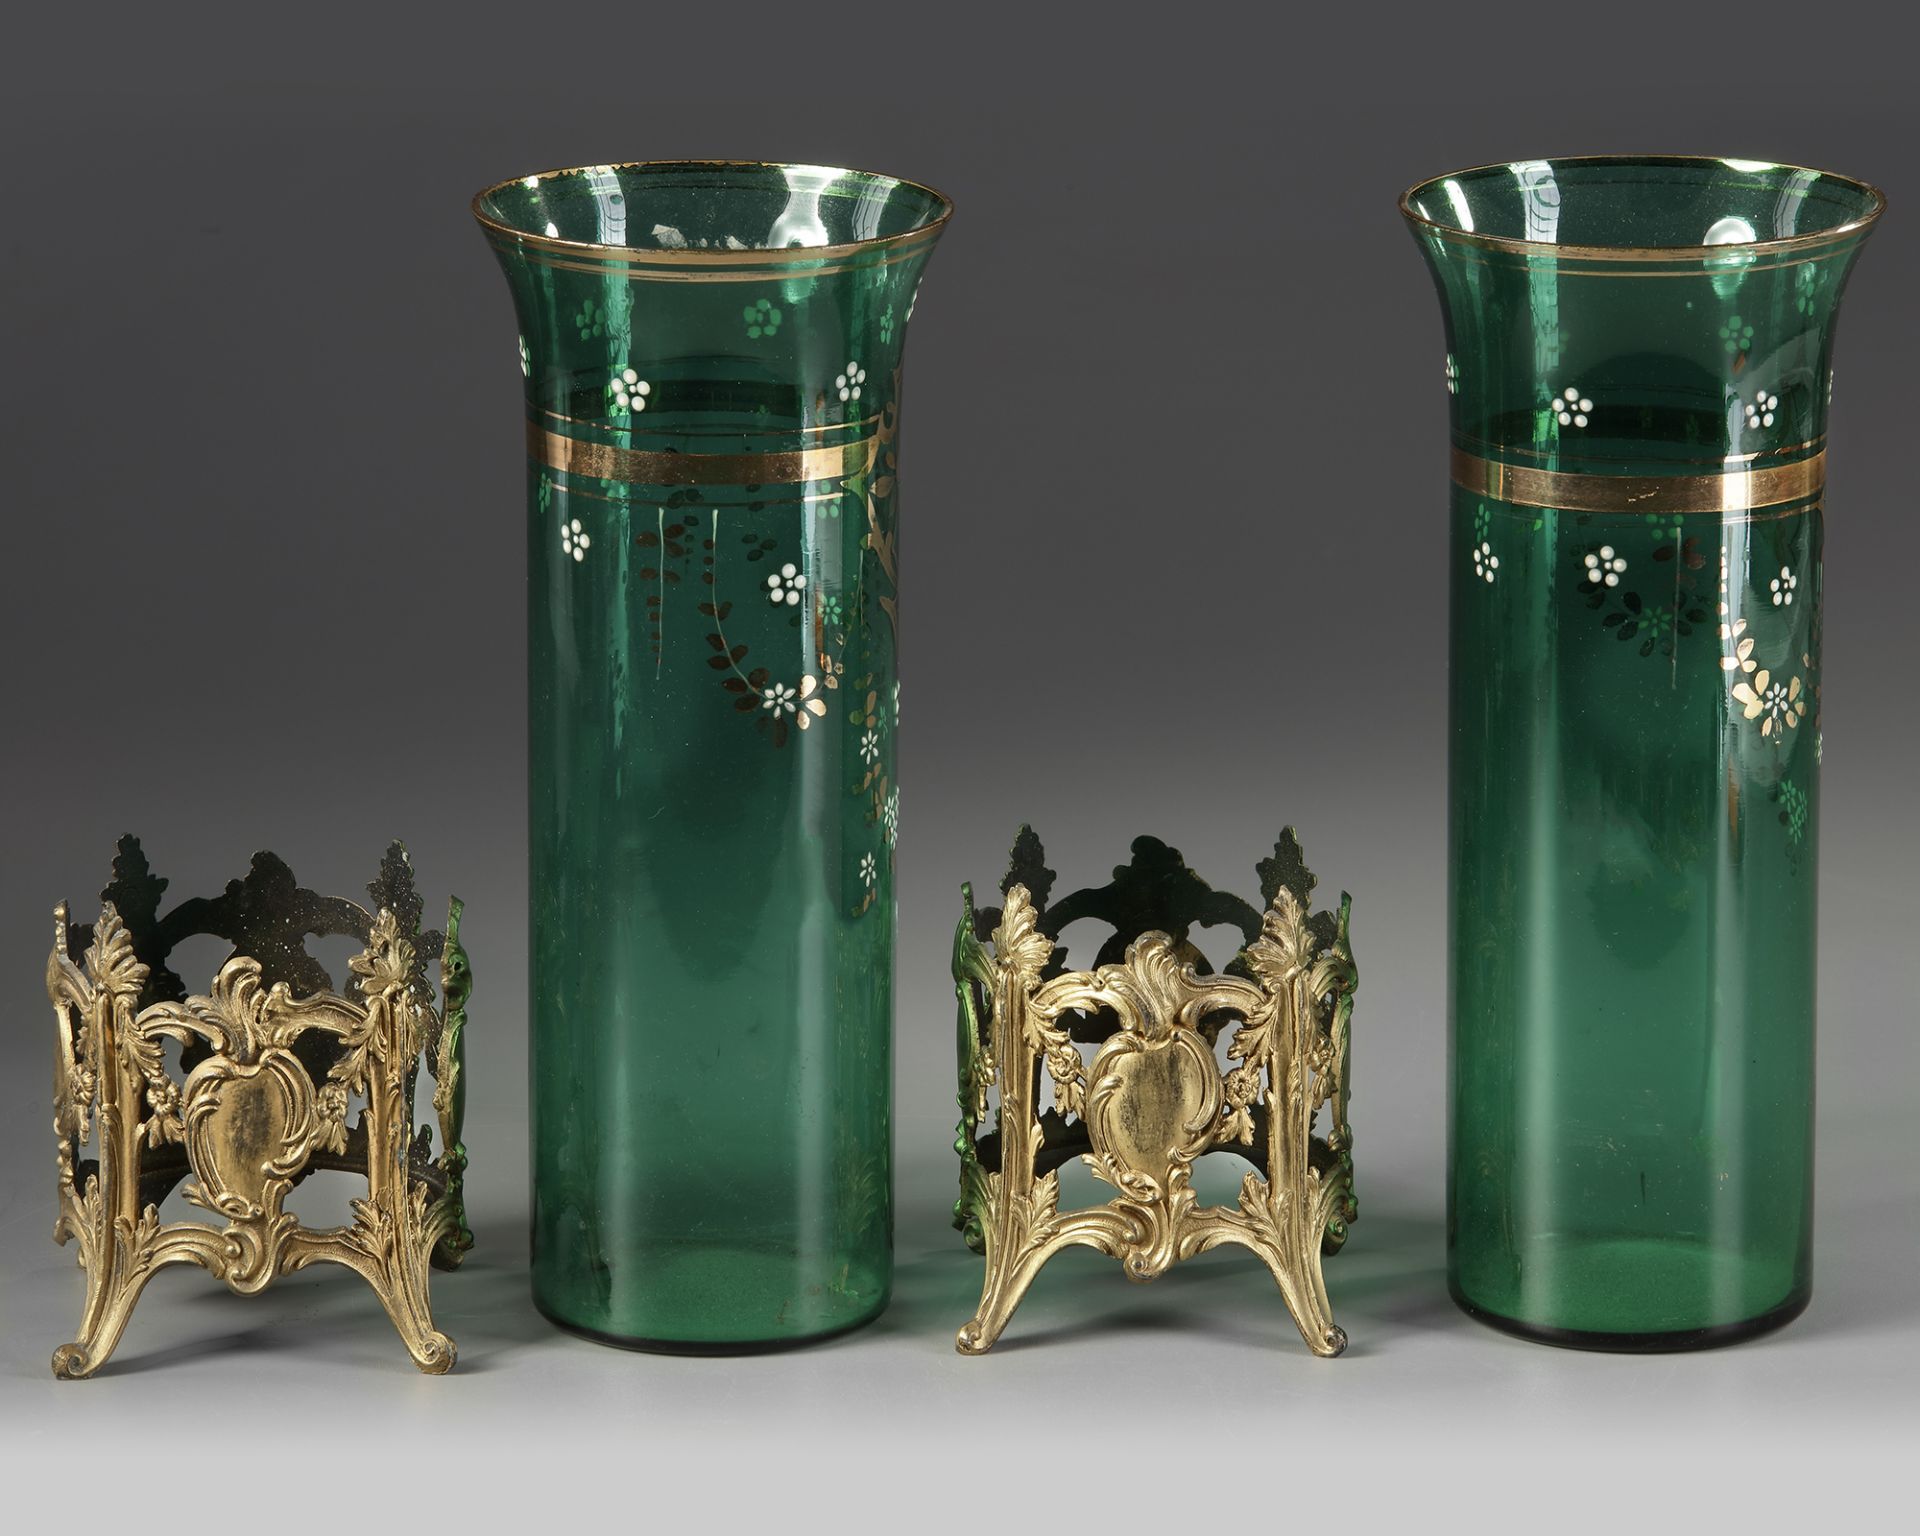 A PAIR OF GREEN GLASS VASES, LATE 19TH CENTURY - Image 3 of 3